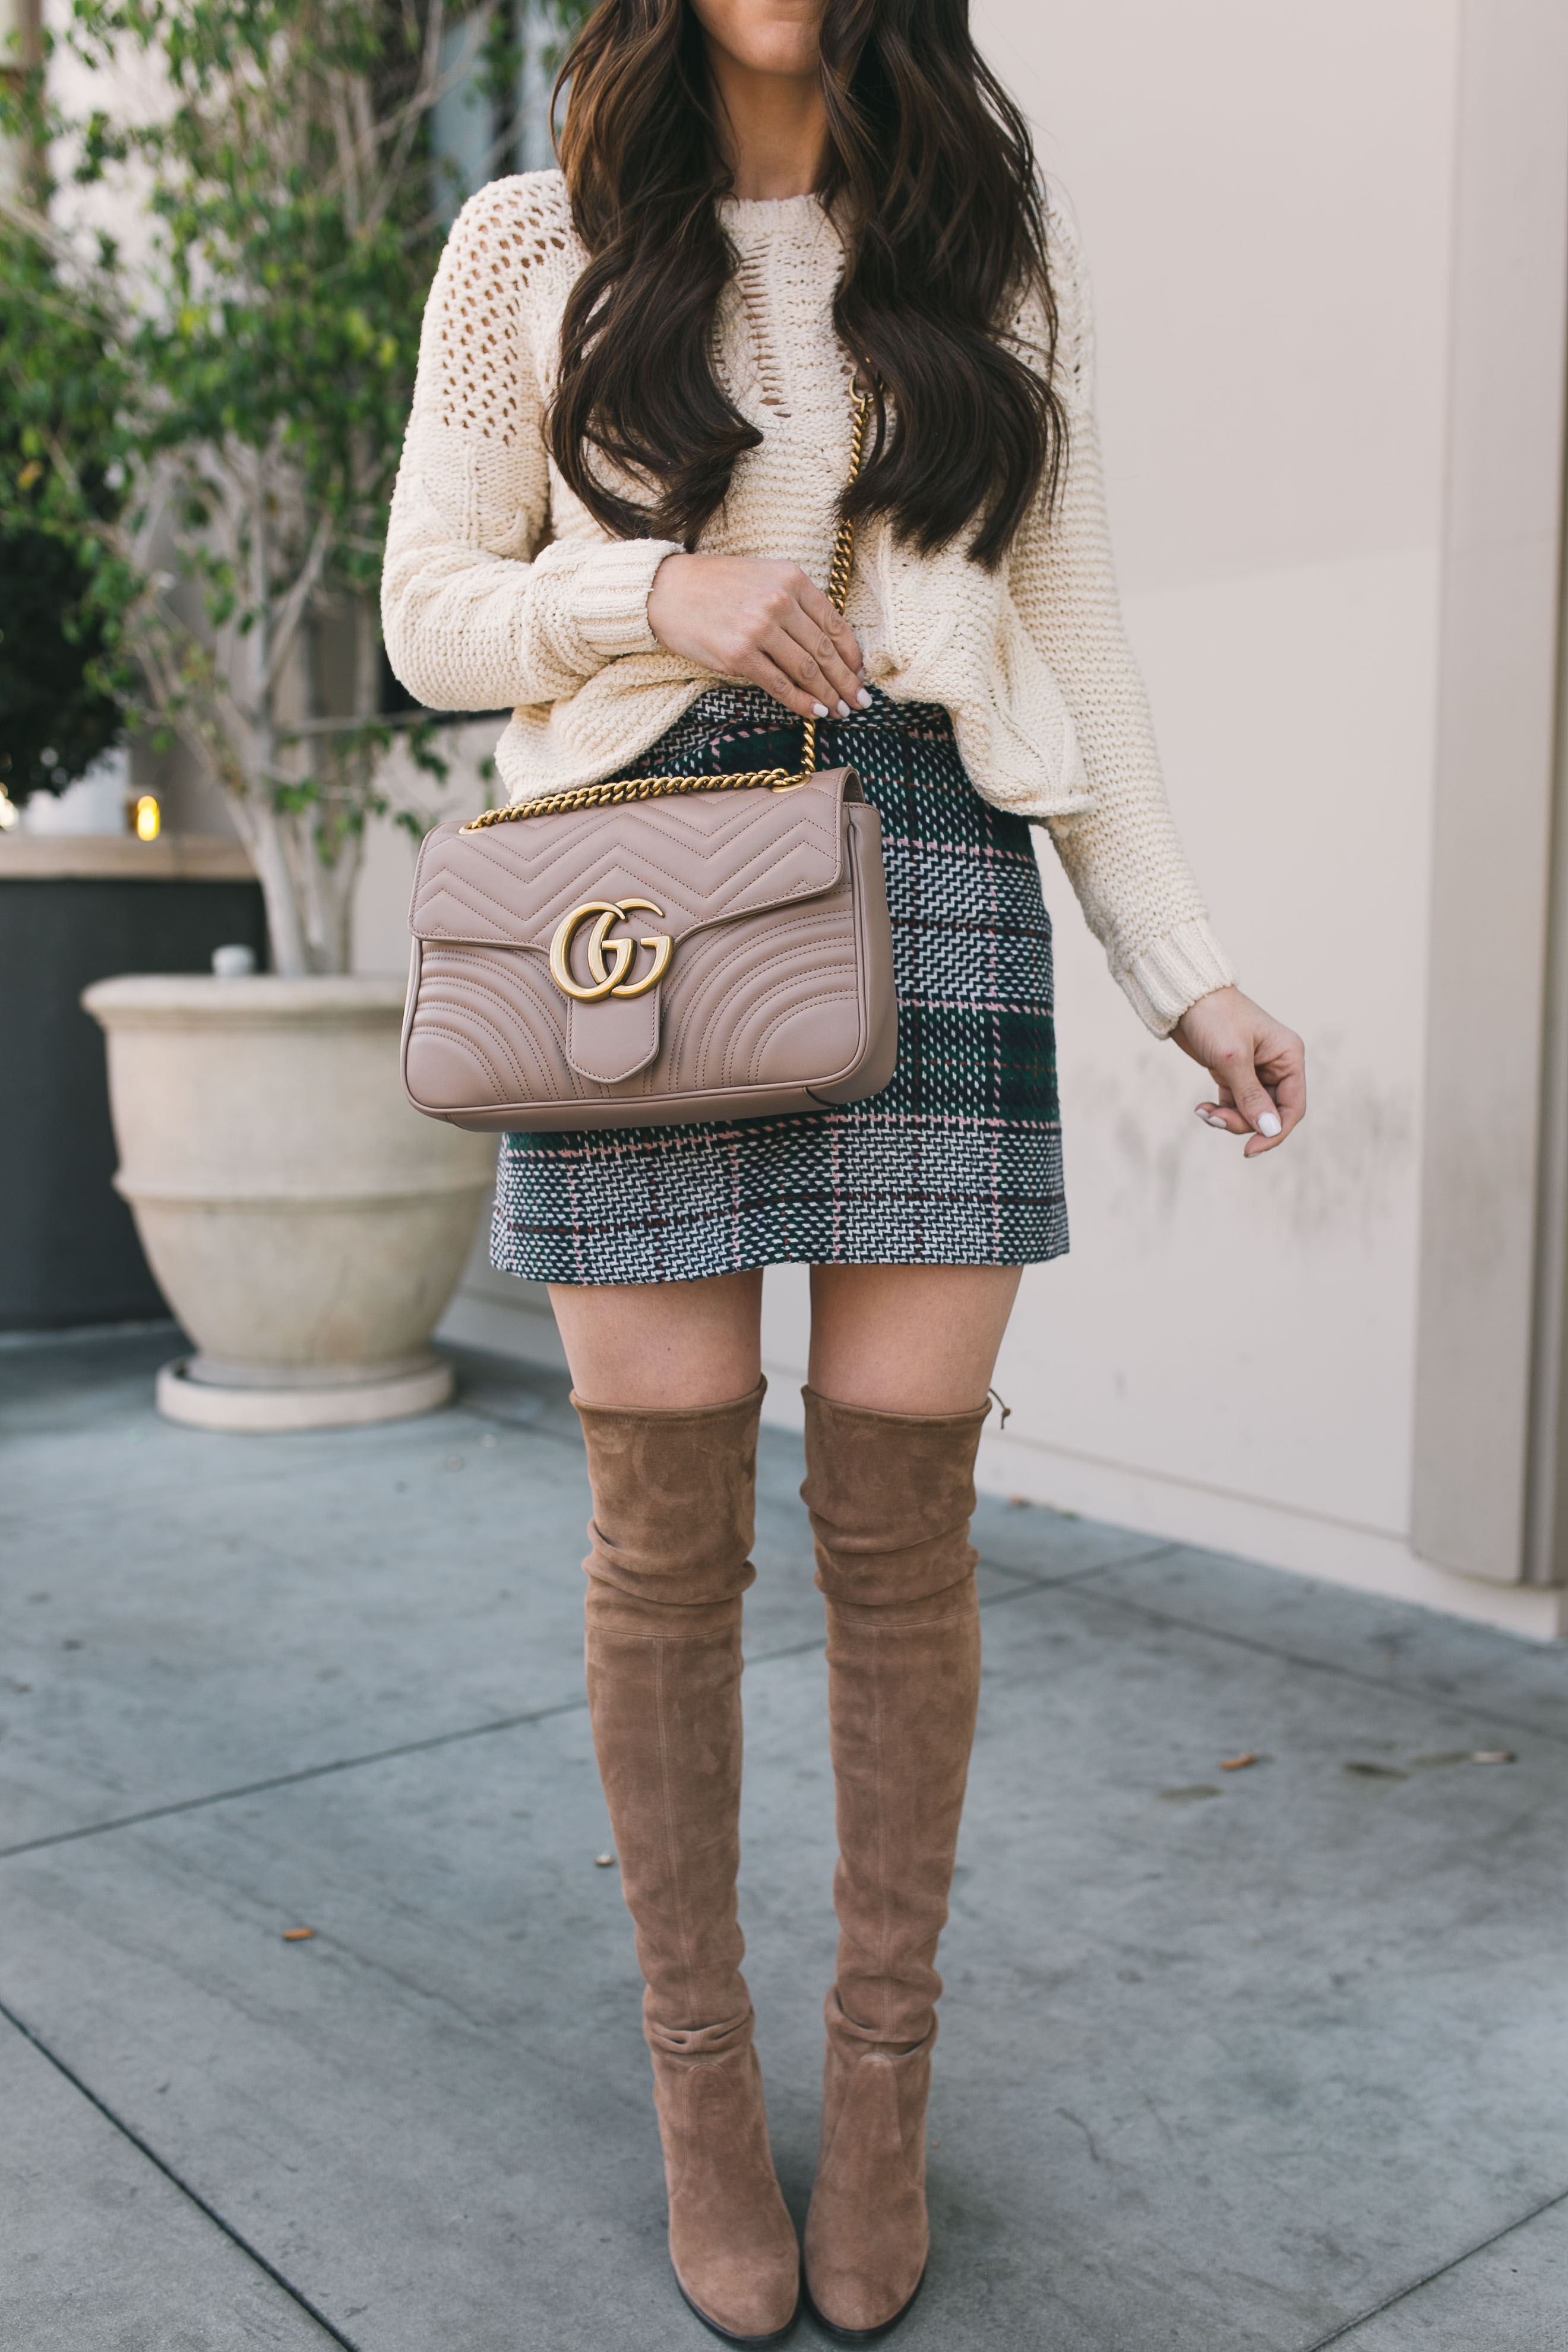 Fashion Blogger Daryl-Ann Denner shares how to wear over-the-knee boots with skirts and jeans with a gucci marmont bag